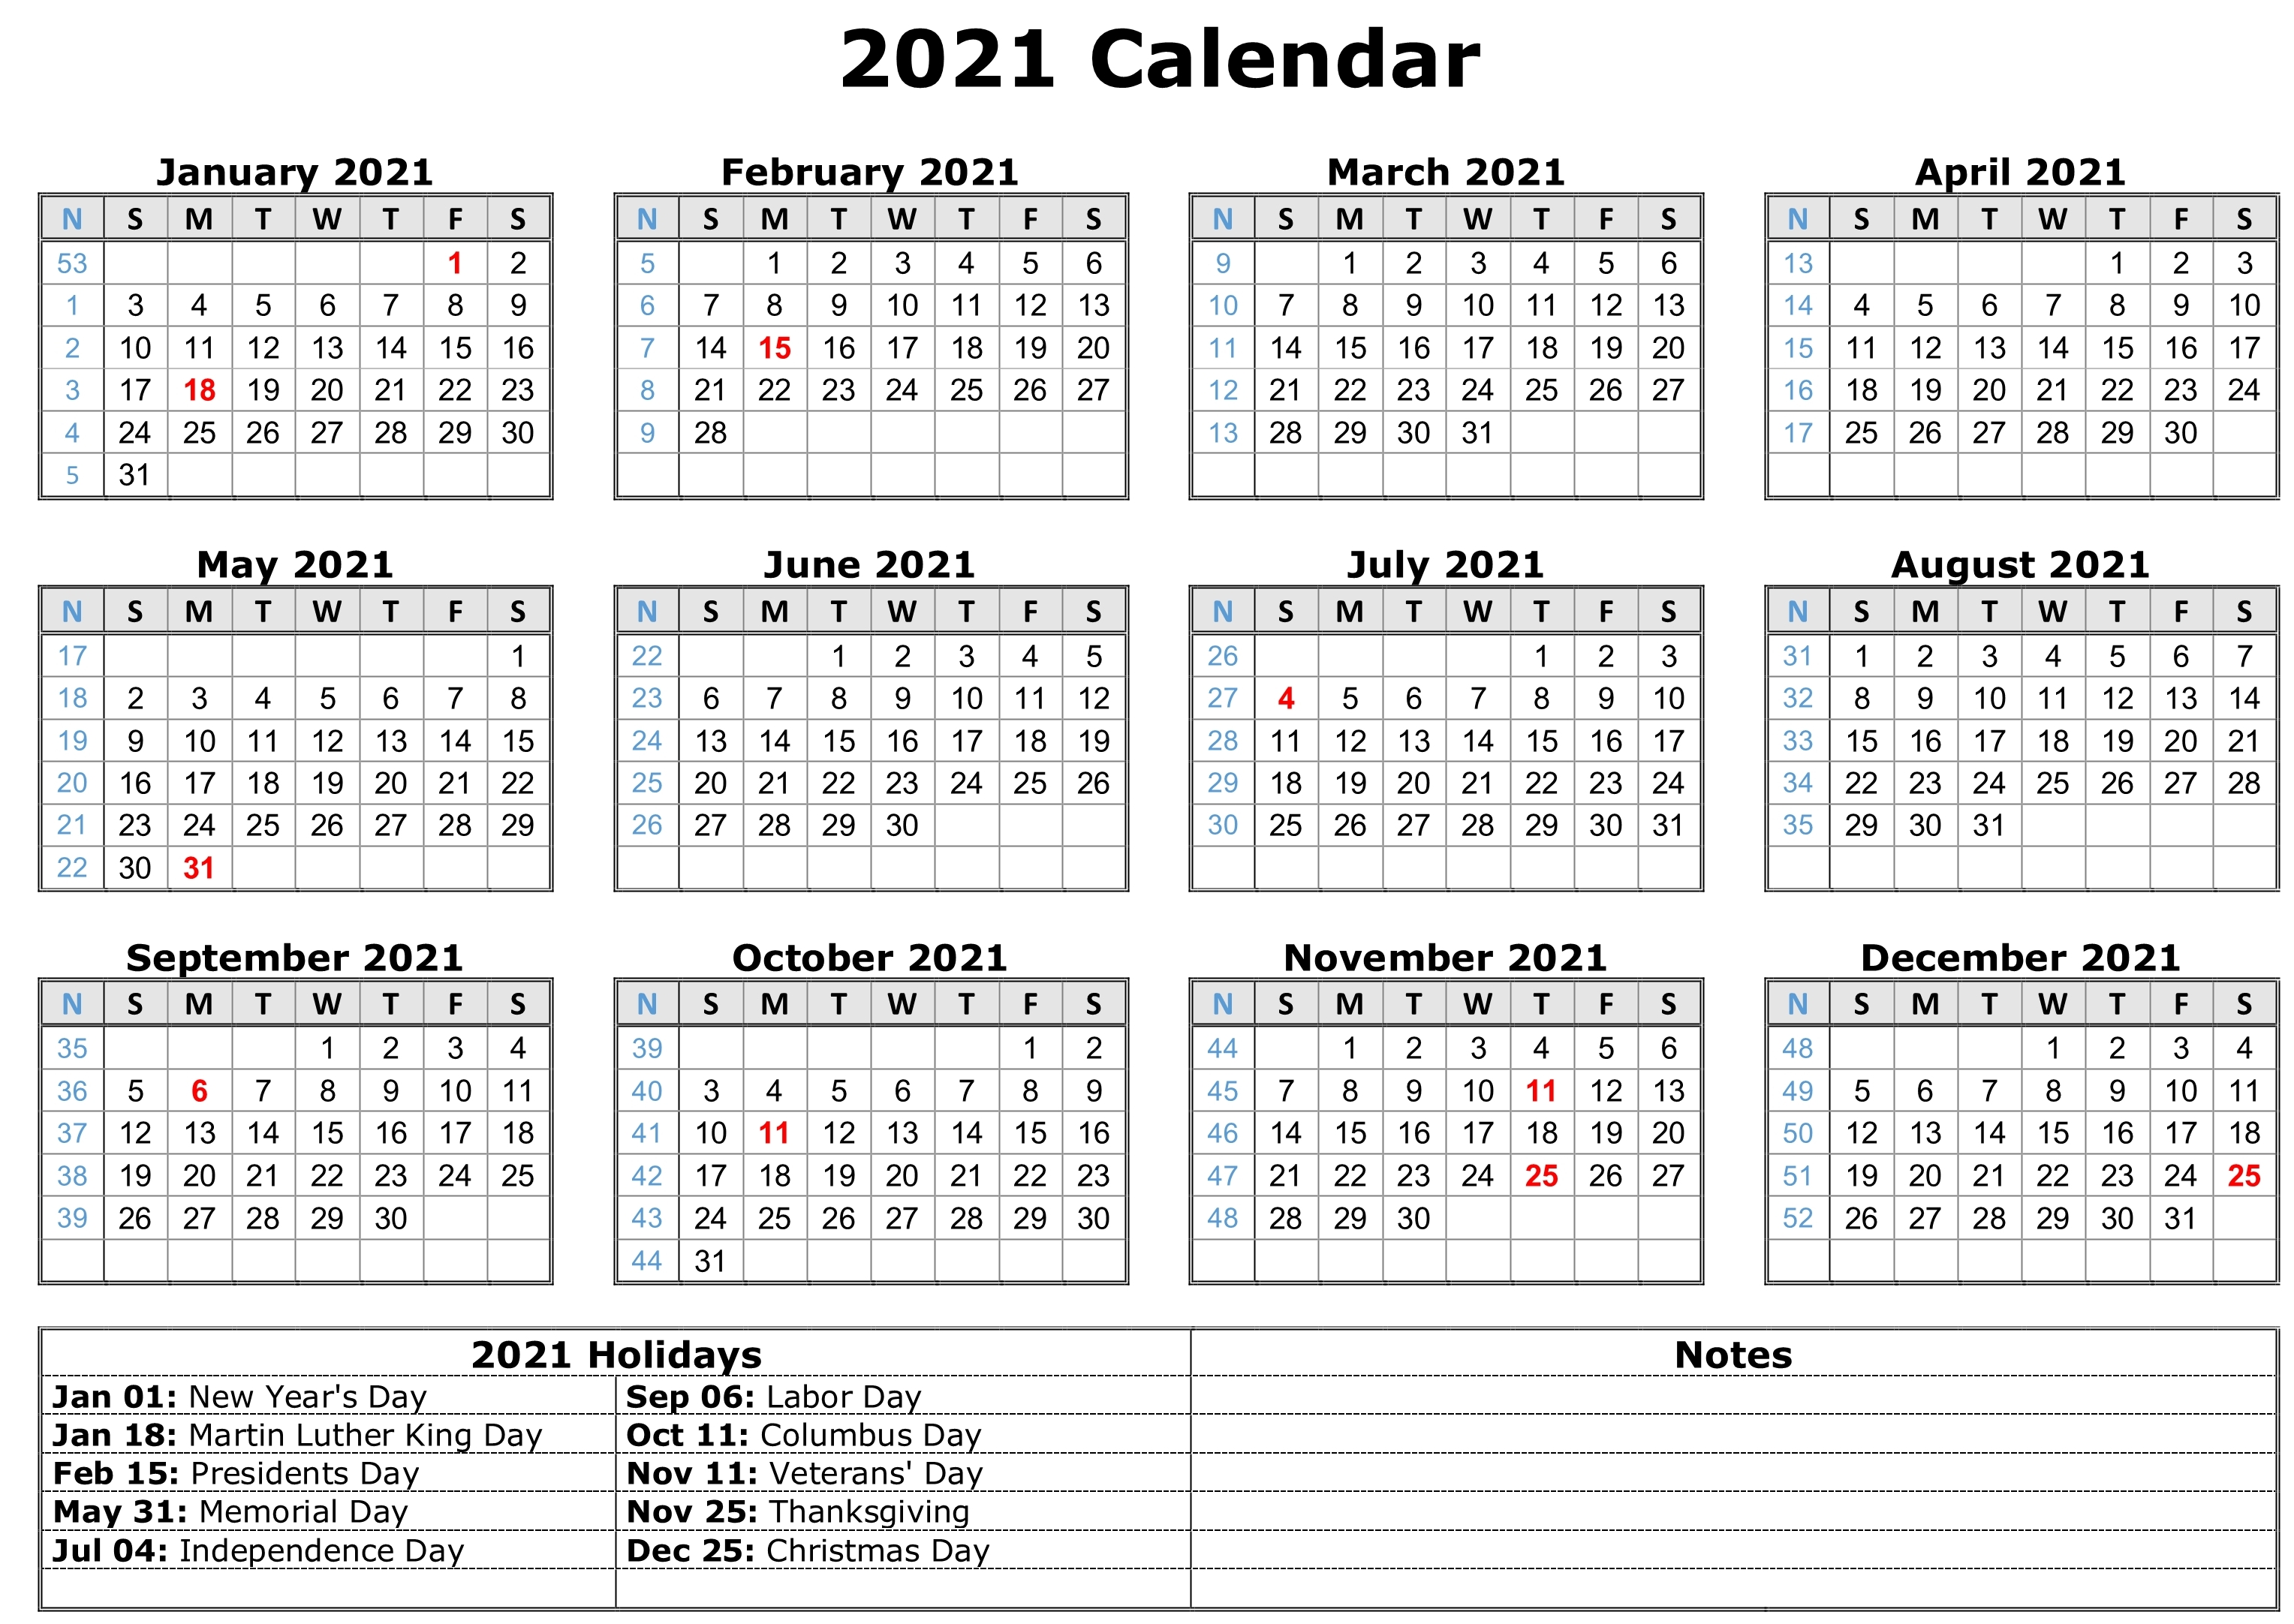 2021 Calendar with Holidays